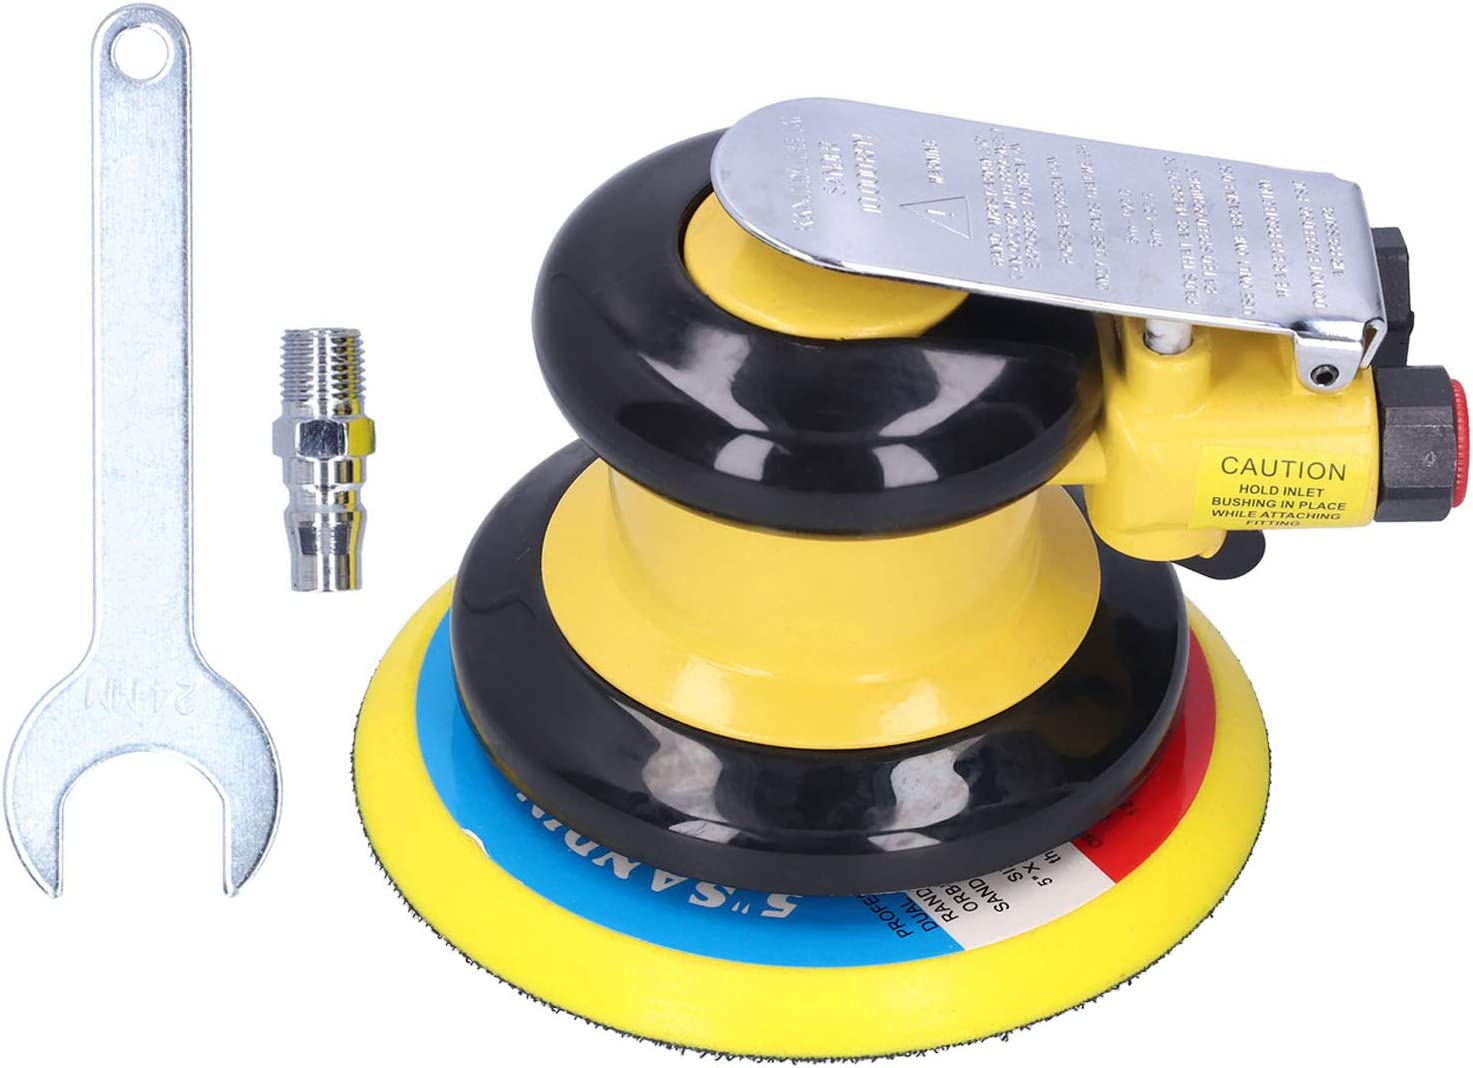 Polishing Machine Compact Size Pneumatic Free shipping anywhere in the nation Sander Strength G High Mesa Mall